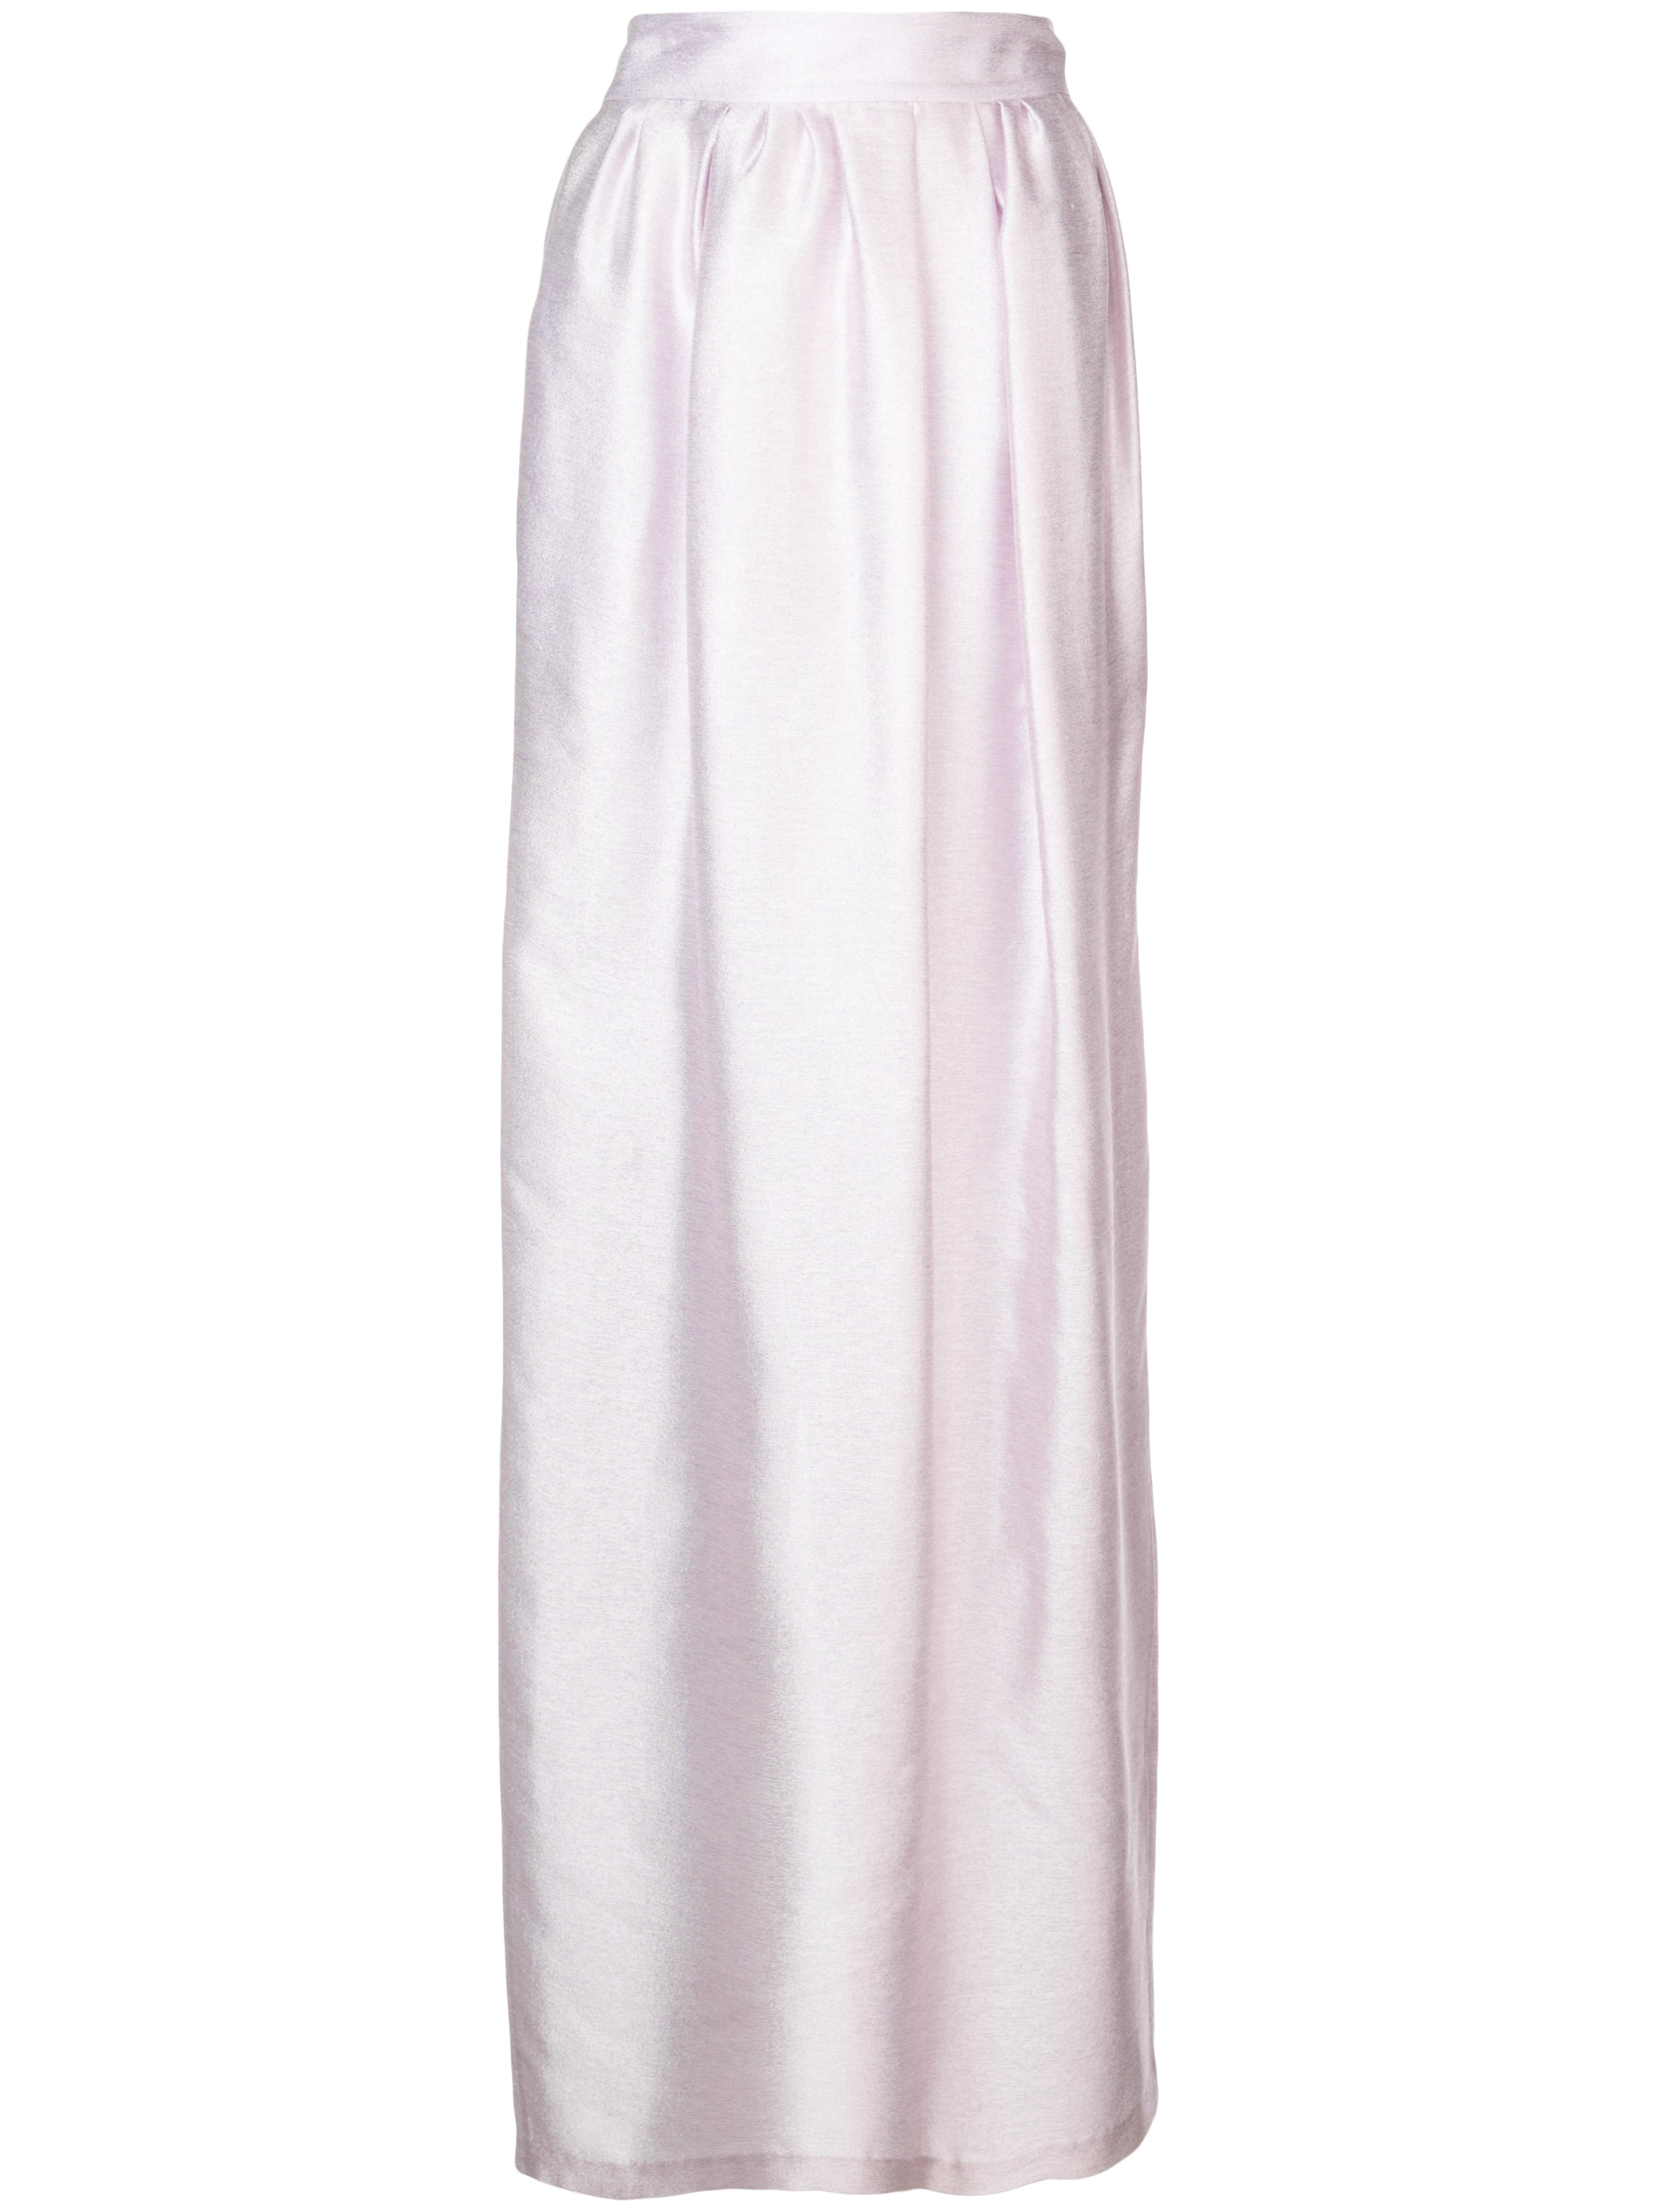 IRIDESCENT SILK LONG SKIRT